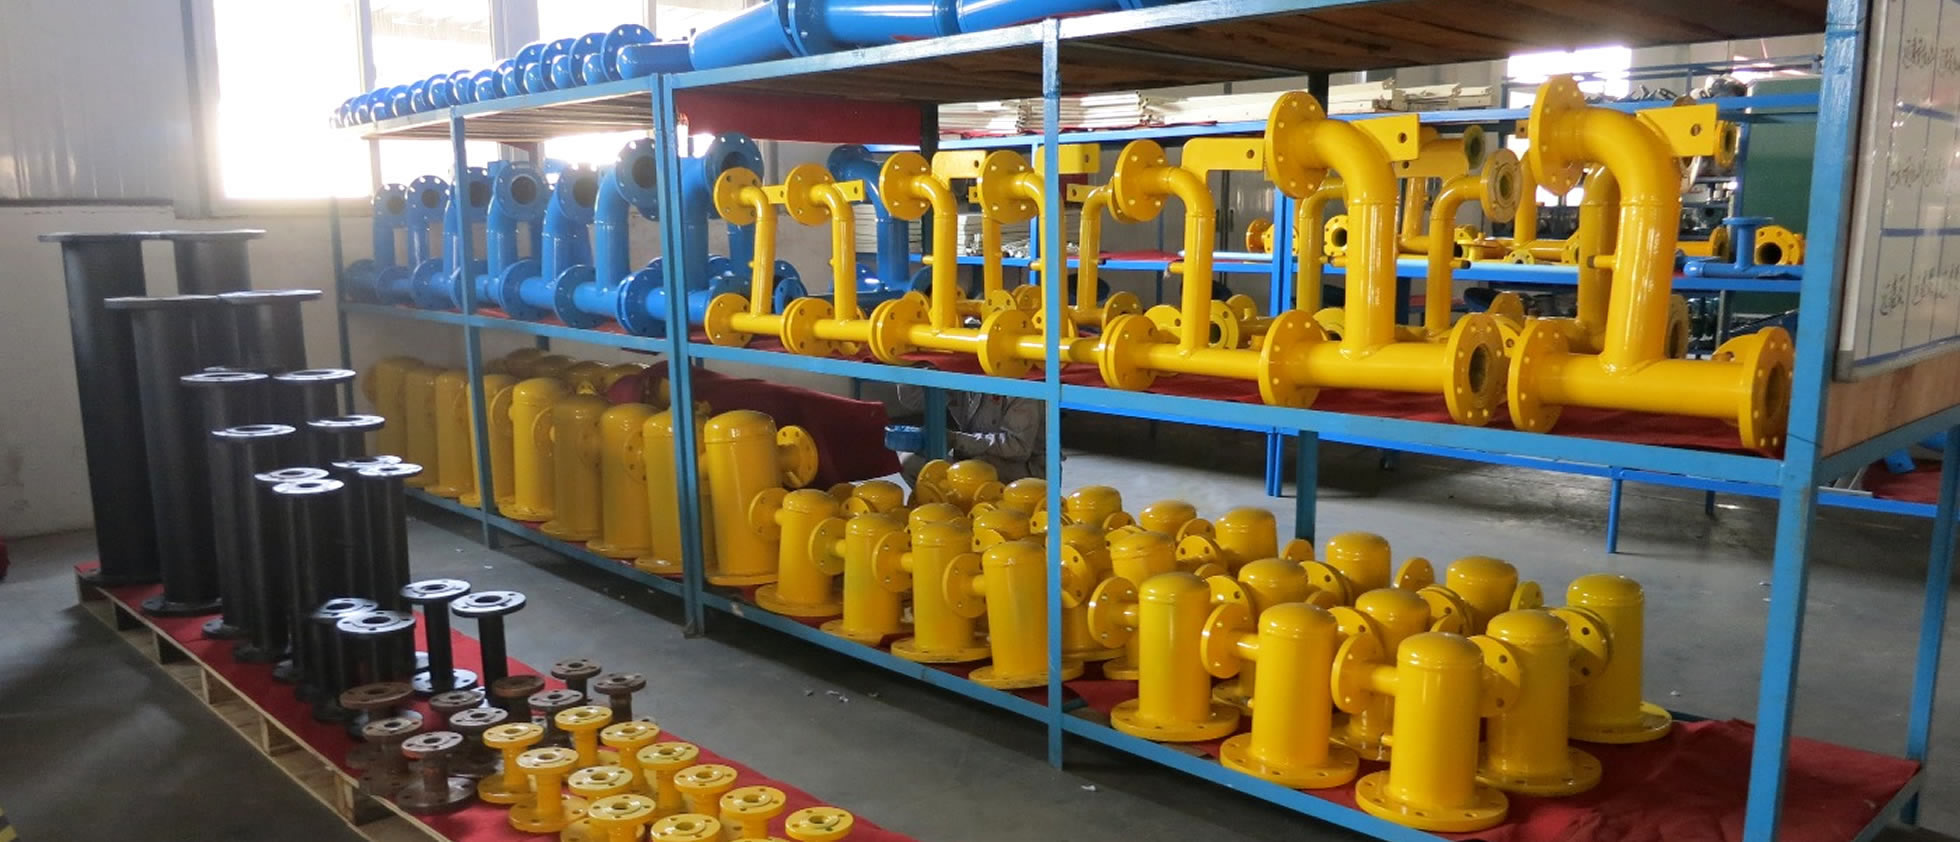 There are many accessories of gas regulator box in the warehouse.